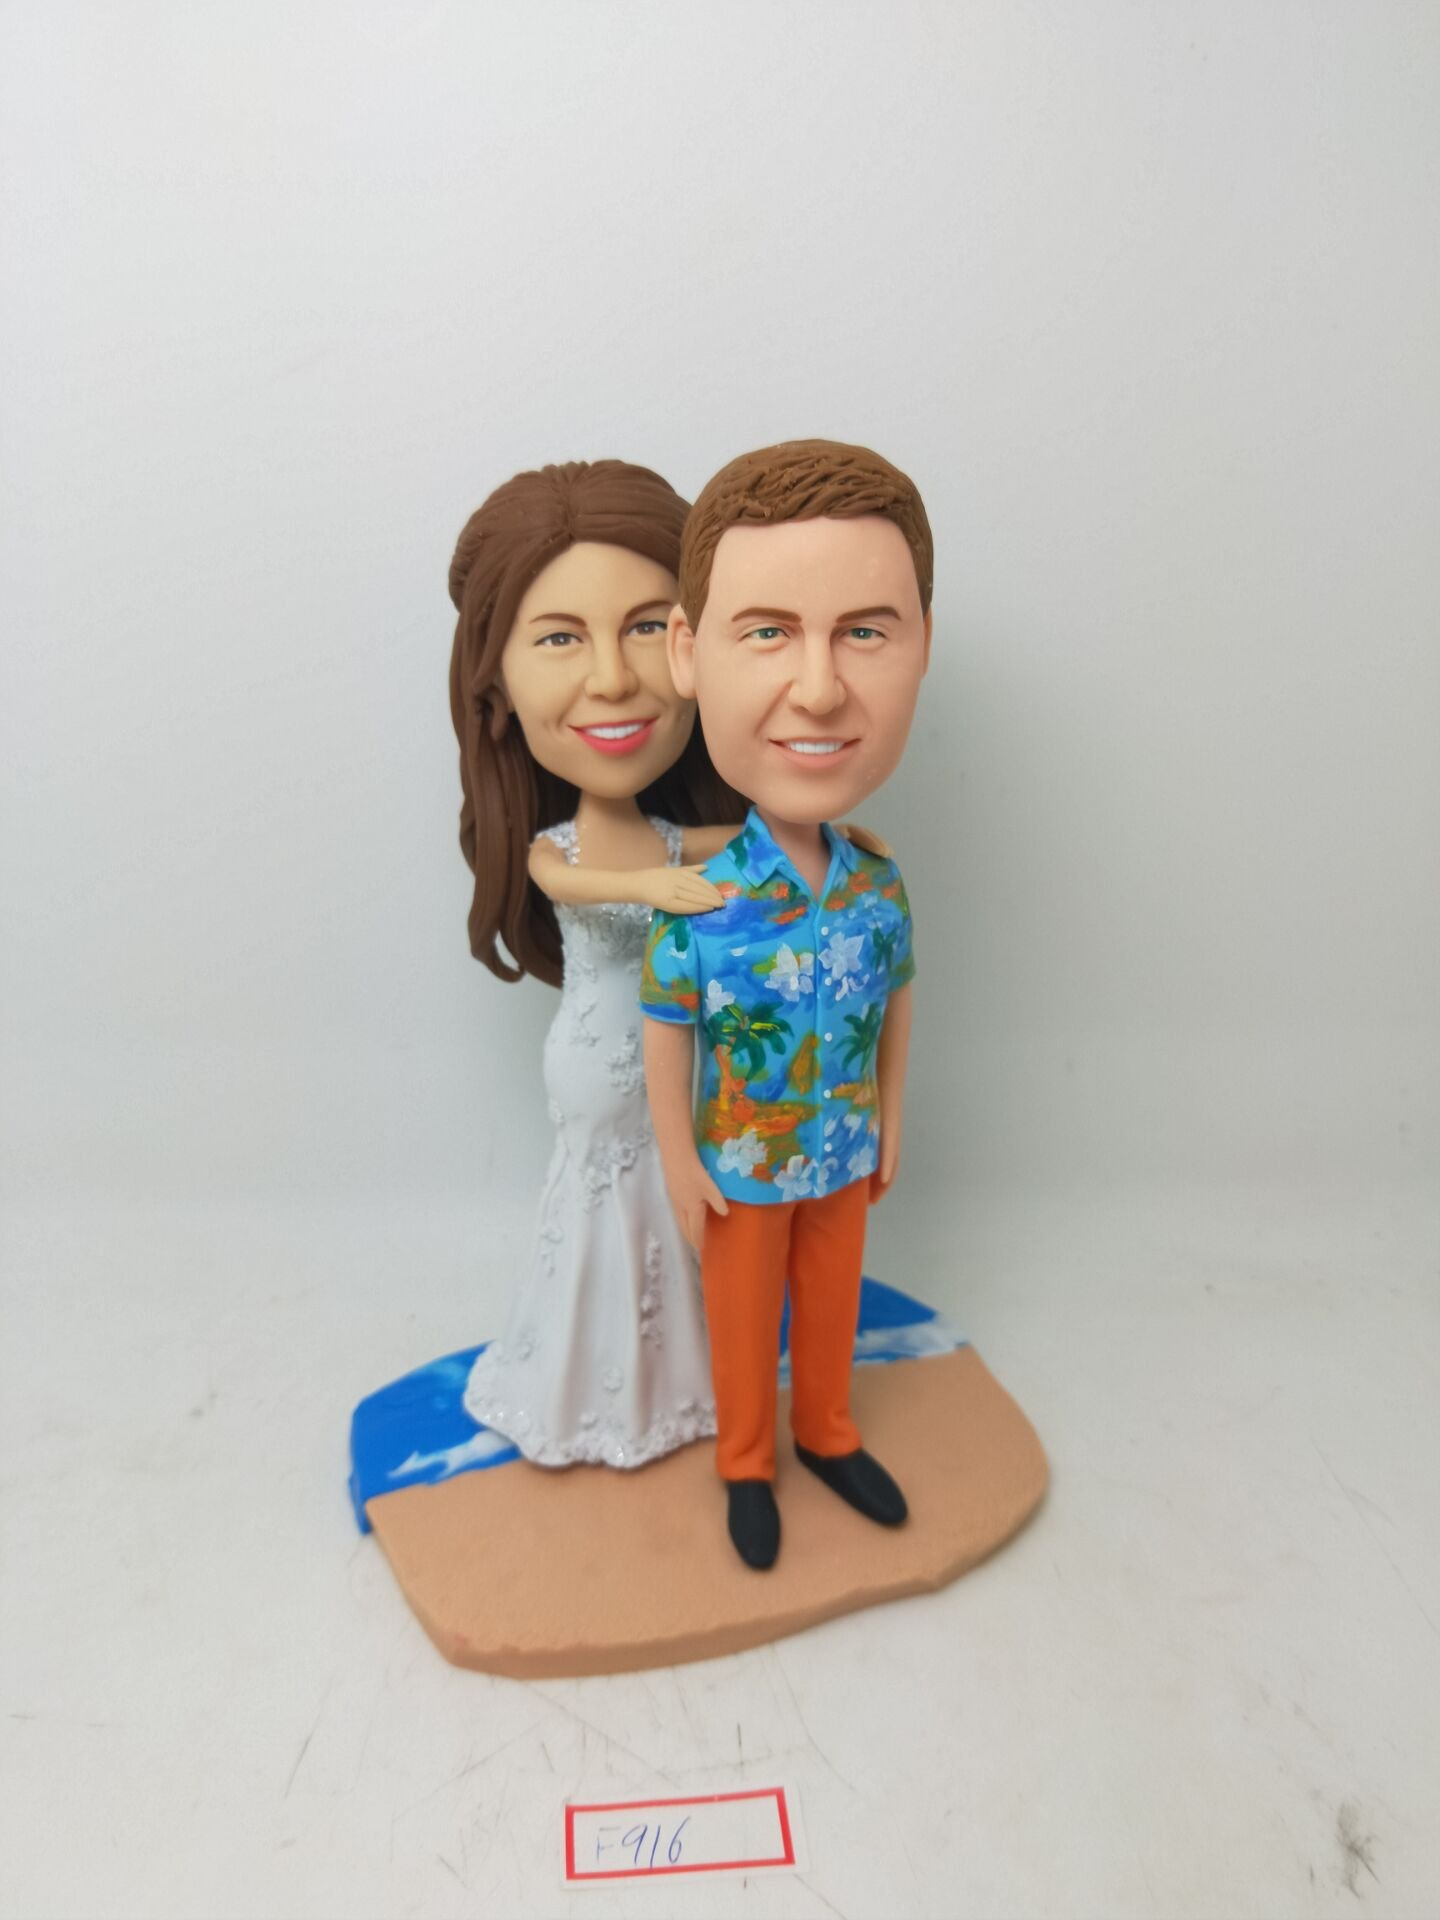 Wedding Bobblehead Creative Newly-Married Gift - 100% Handmade Polymer Clay Bobbleheads Cake Toppers by MiniBobbleheads